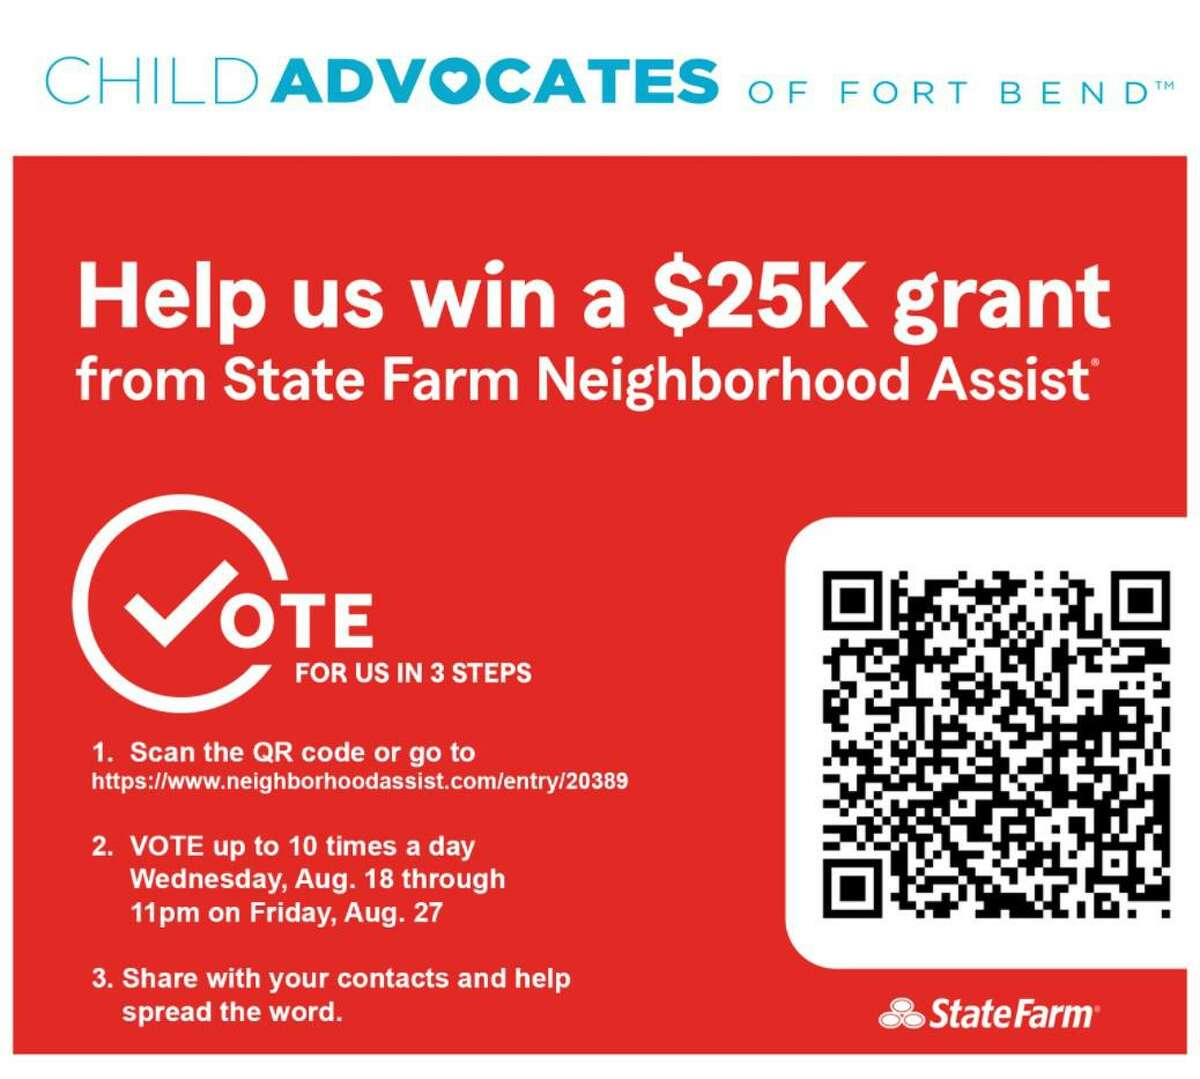 Please share this event with your colleagues, friends, and family to help spread the word and vote for Child Advocates of Fort Bend.